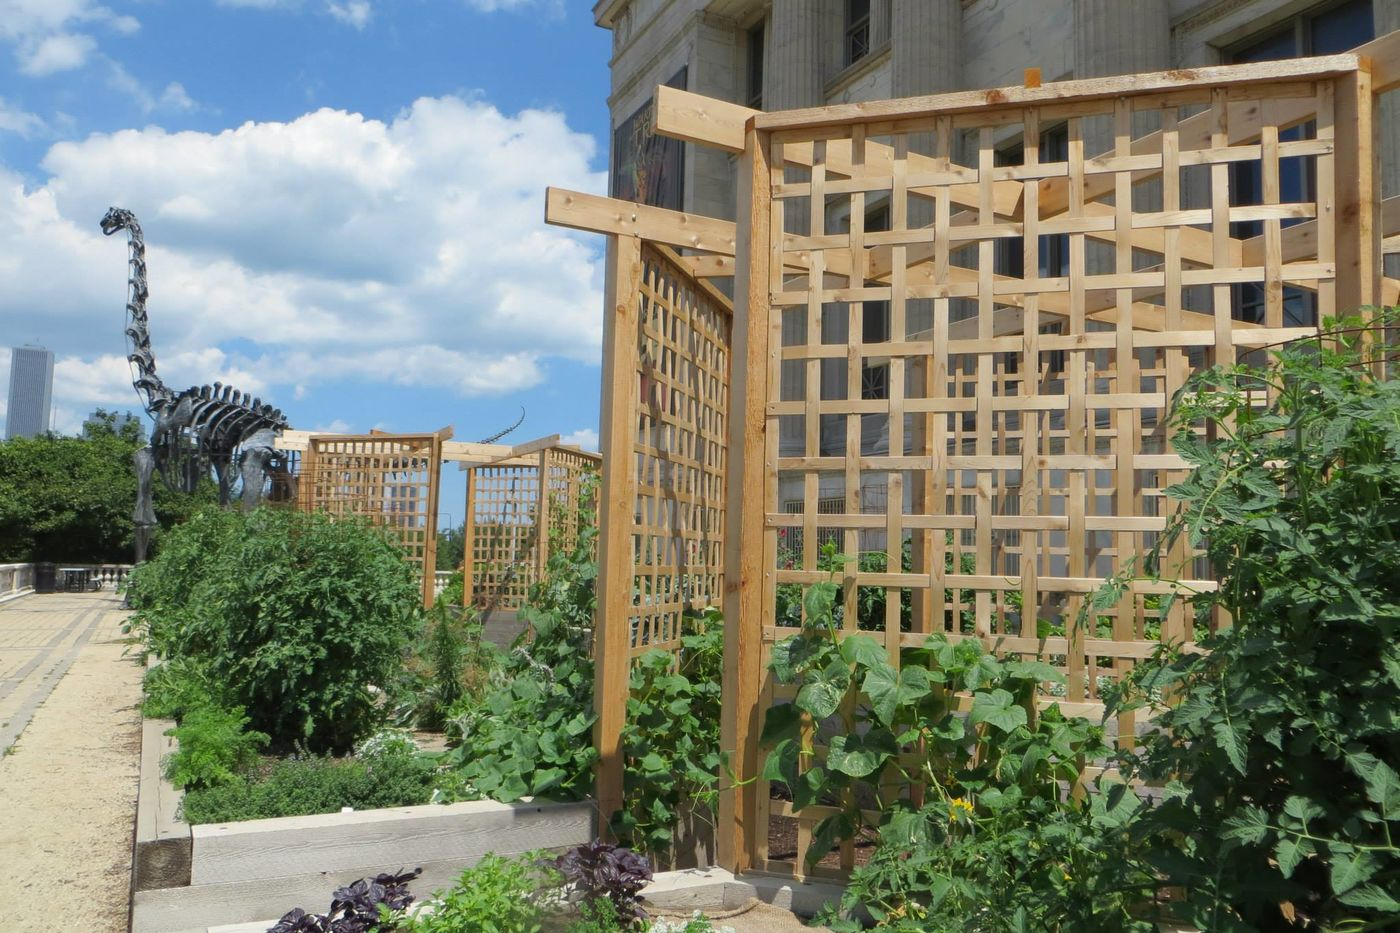 The Garden Is Made Possible By A Partnership Between The Field Museum,  Jewell Events Catering And The Peterson Garden Project.